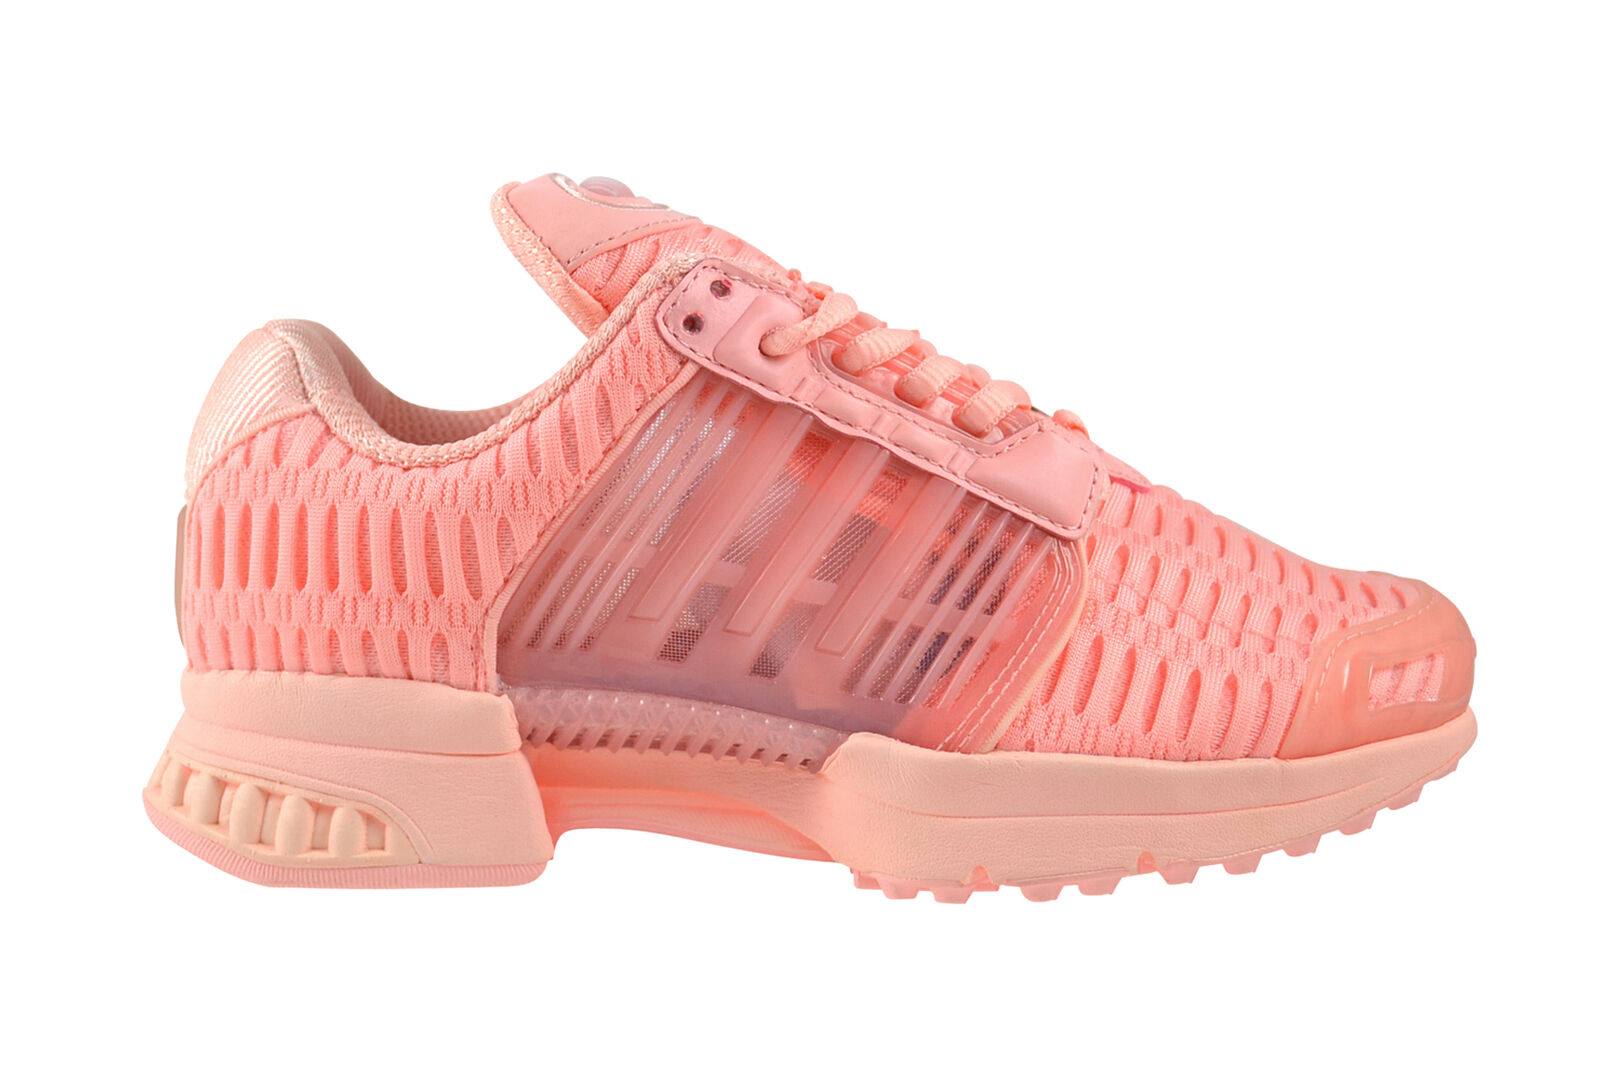 ADIDAS CLIMACOOL 1 femmes Haze Coral baskets Chaussures Rose bb2876